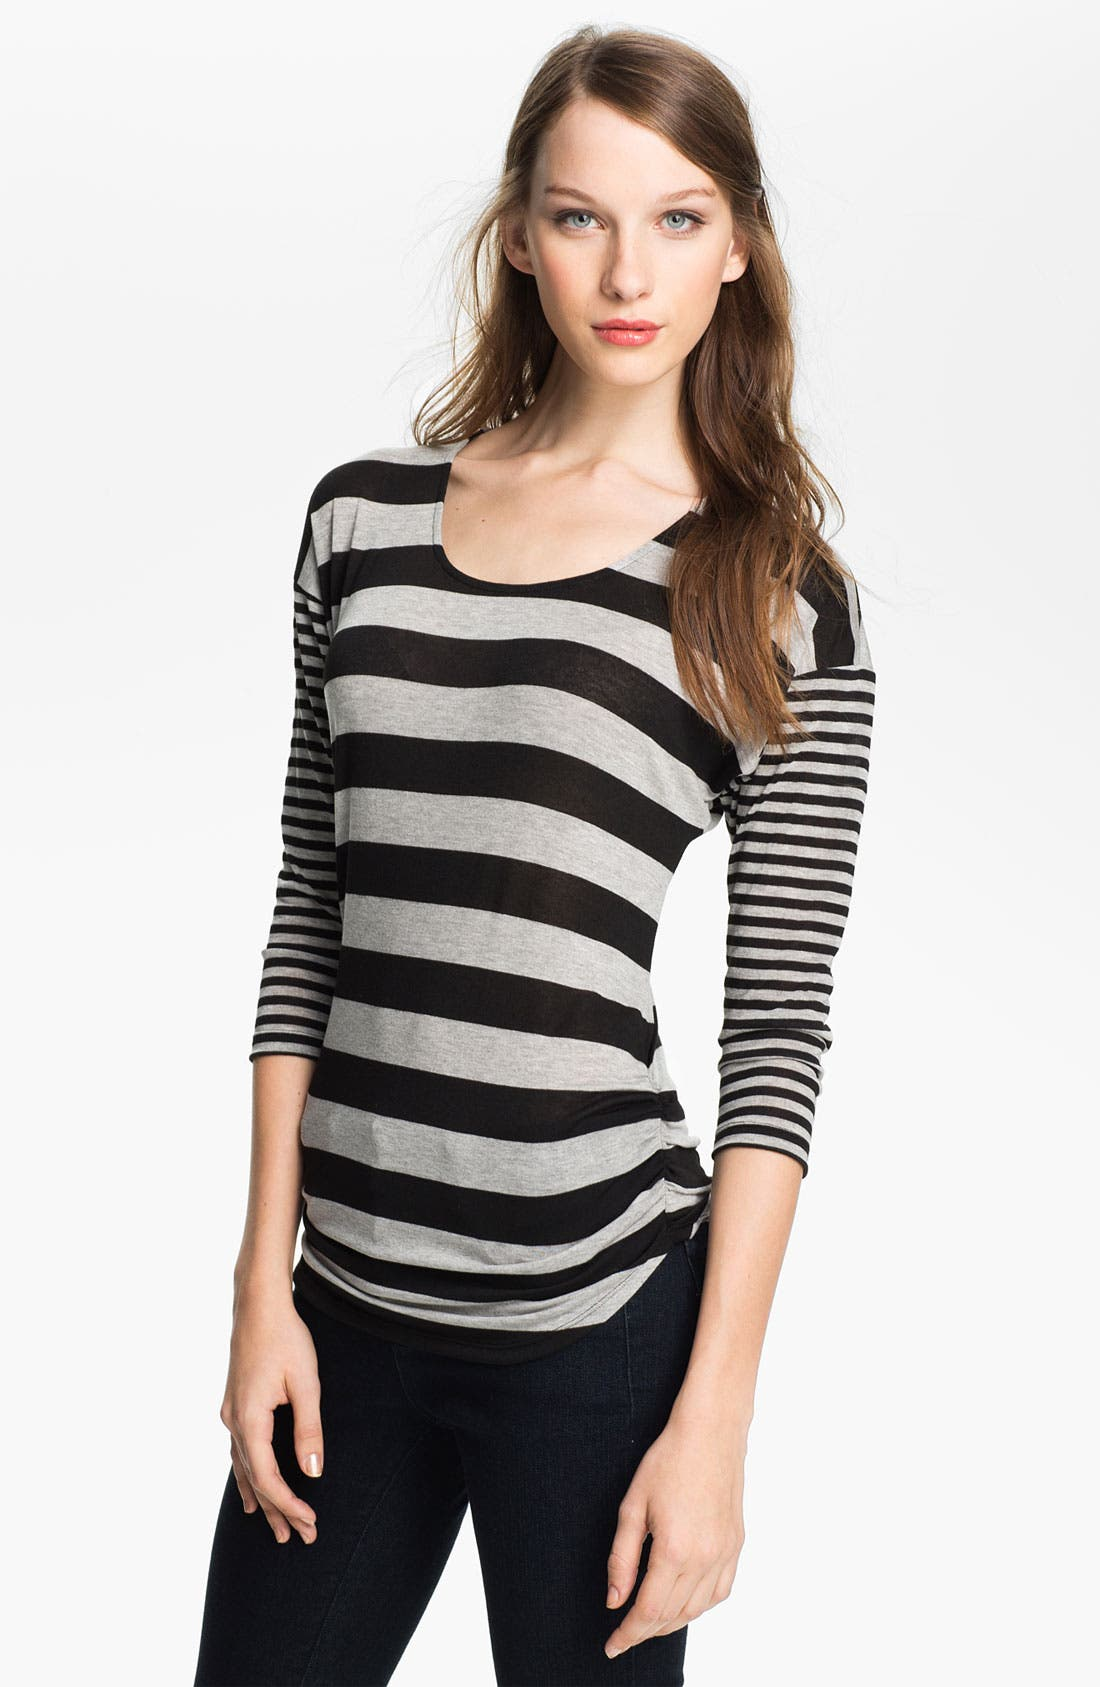 Alternate Image 1 Selected - Olivia Moon Mix Stripe Top (Petite)